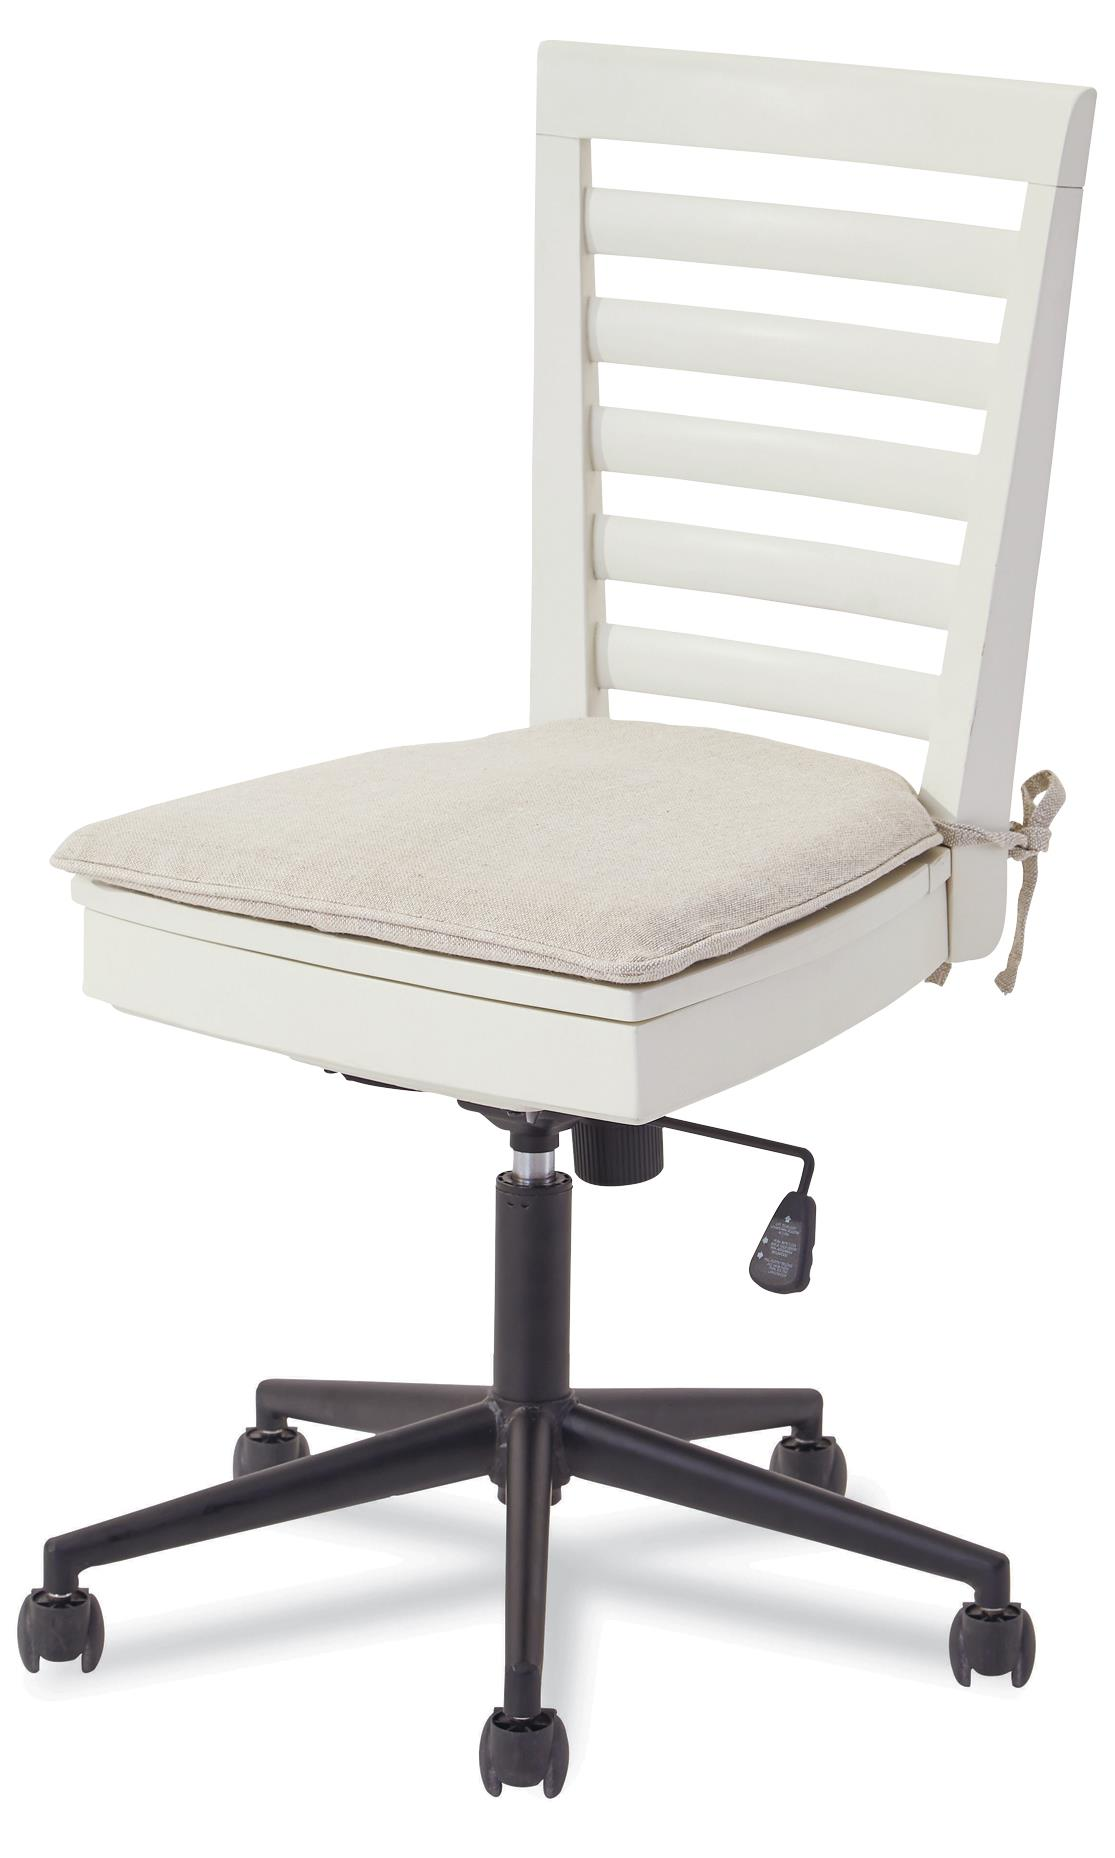 Smartstuff #myRoom Swivel Desk Chair - Item Number: 5321071